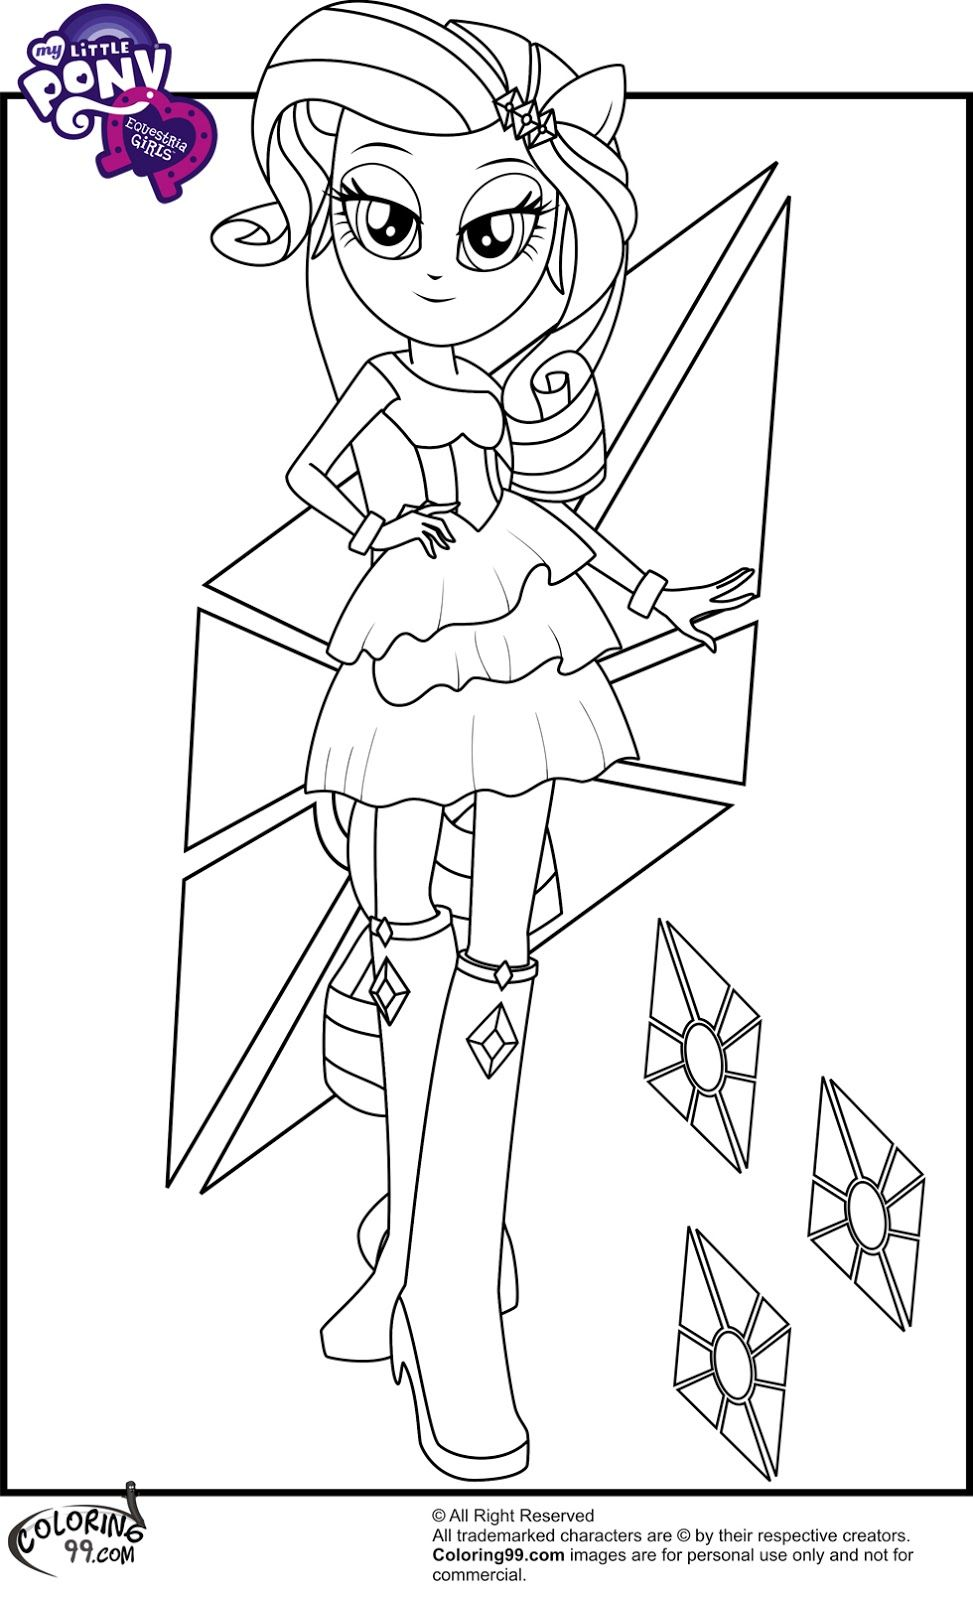 My Little Pony Equestria Girls Coloring Pages Team Colors My Little Pony Twilight Festa Do My Little Pony Equestria Girls